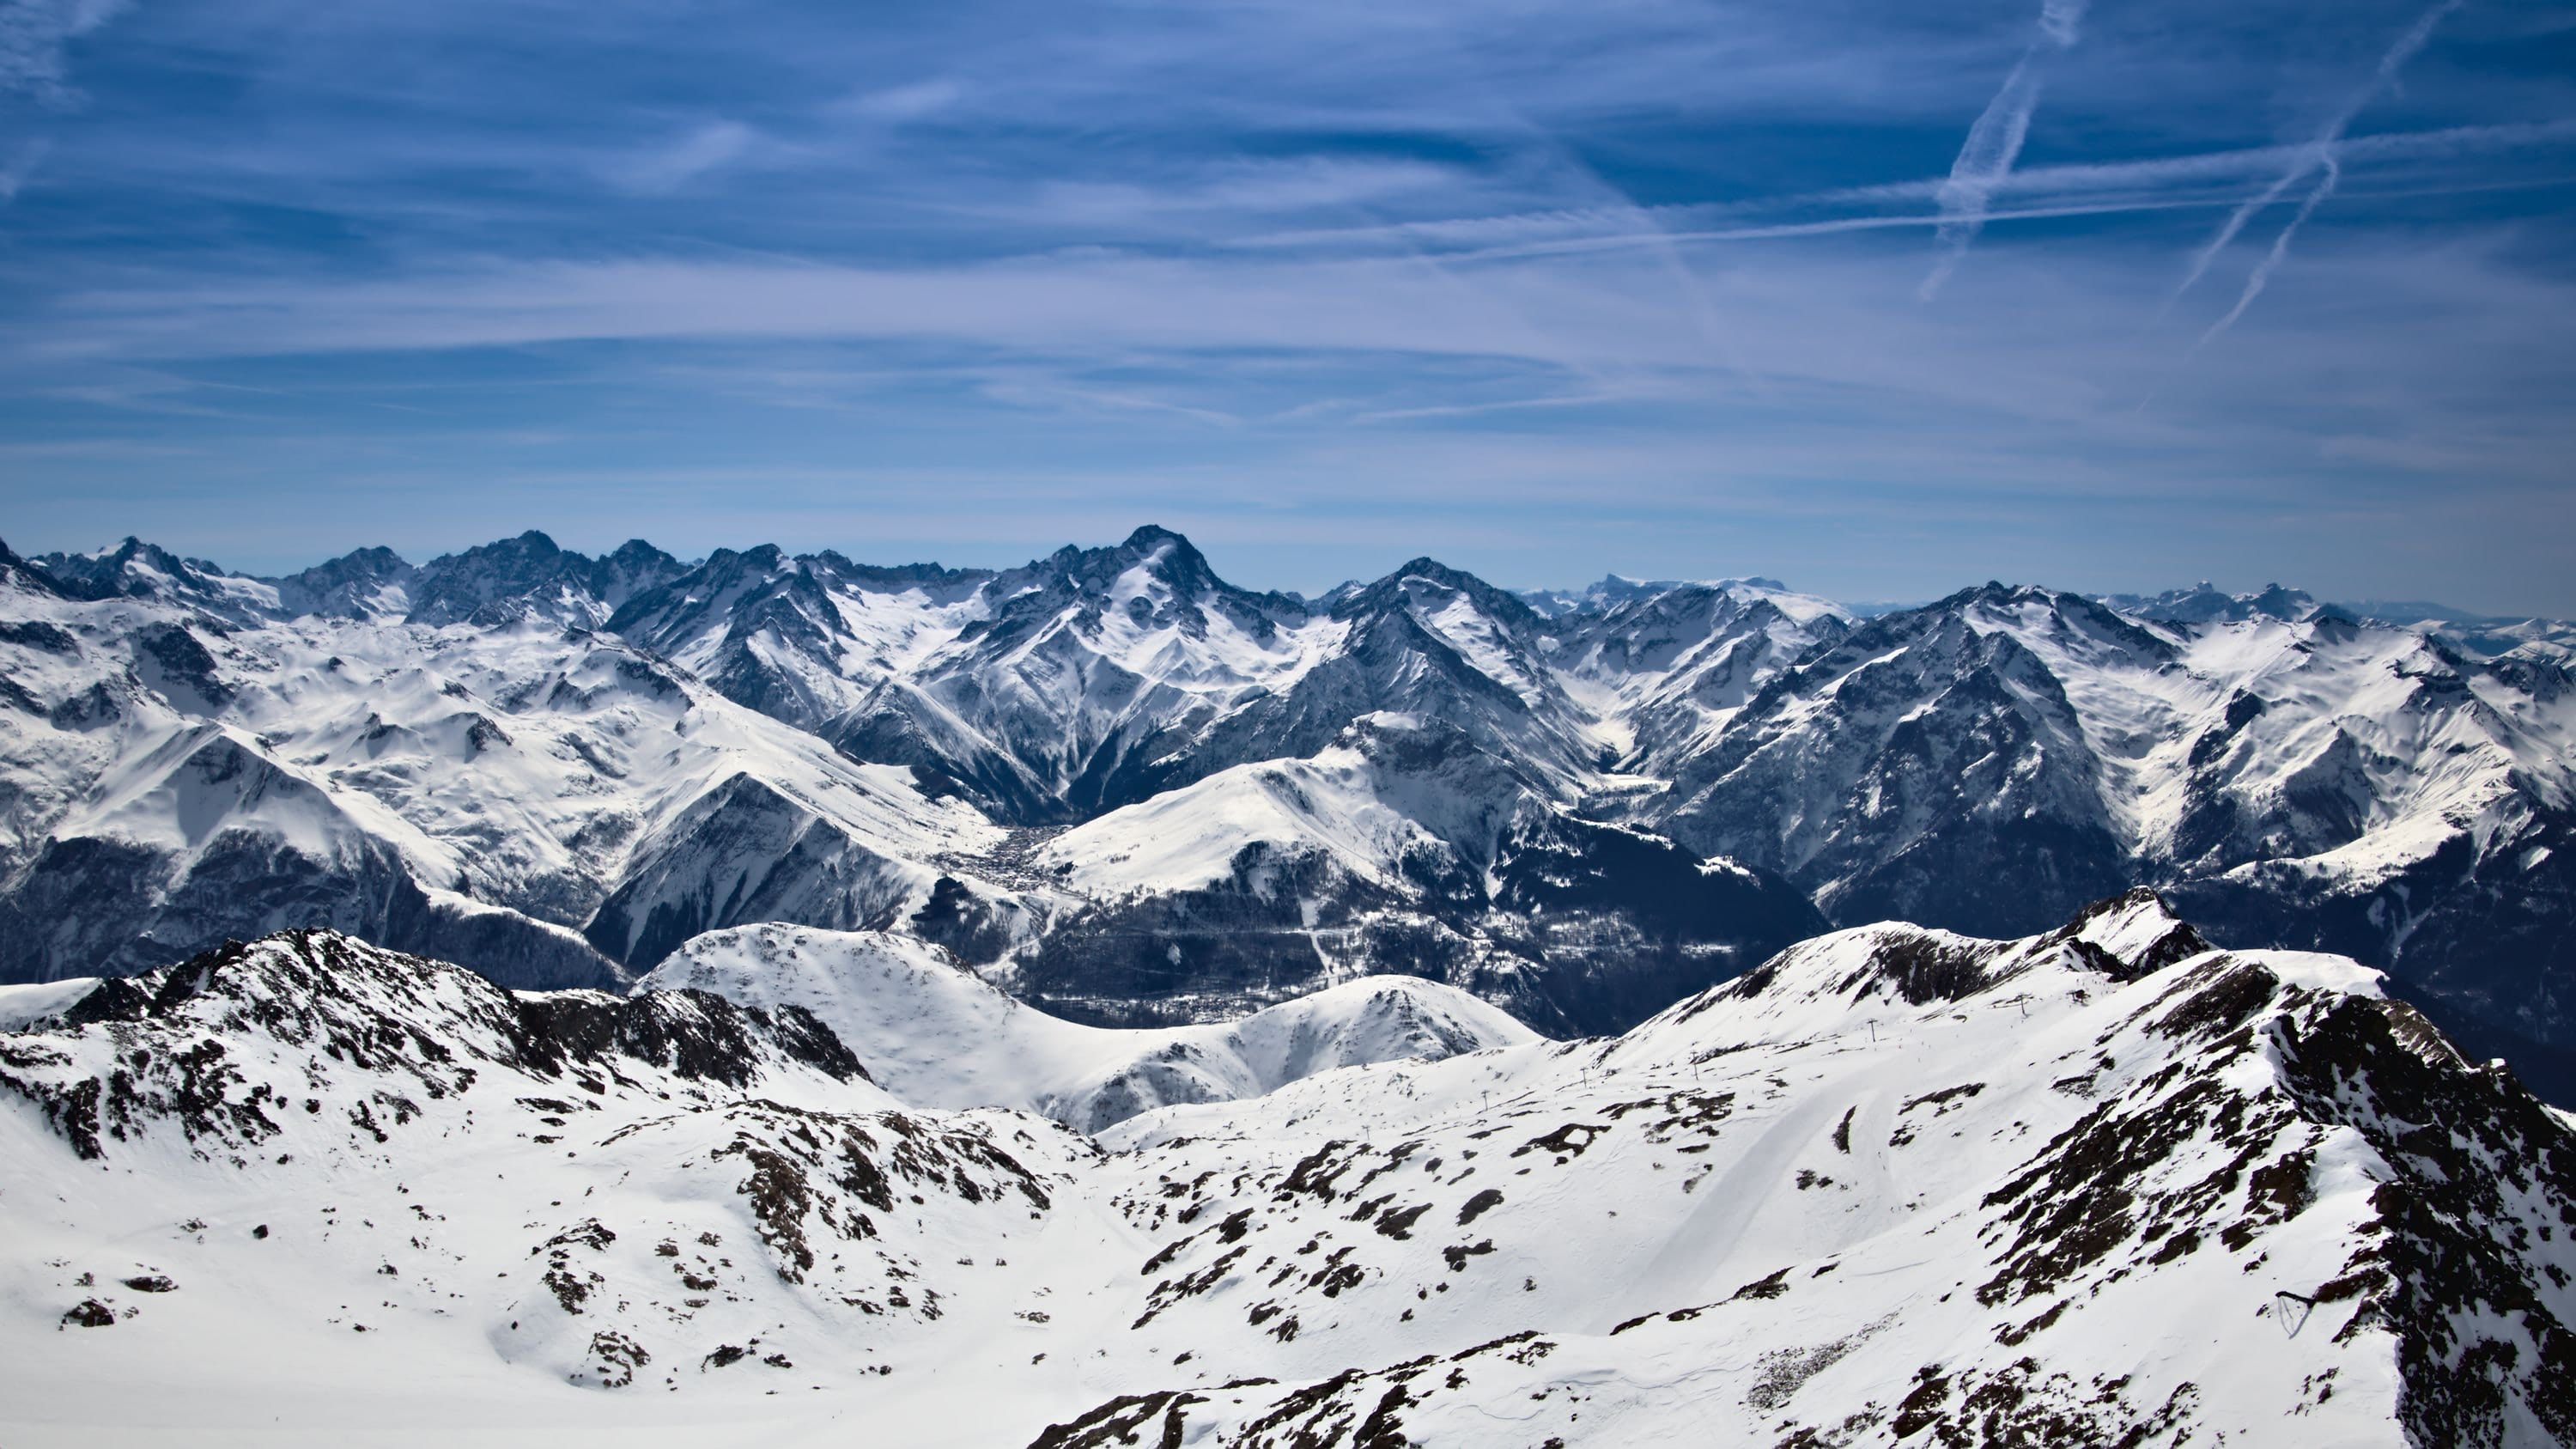 Snowy Mountains at Alpe d'Huez